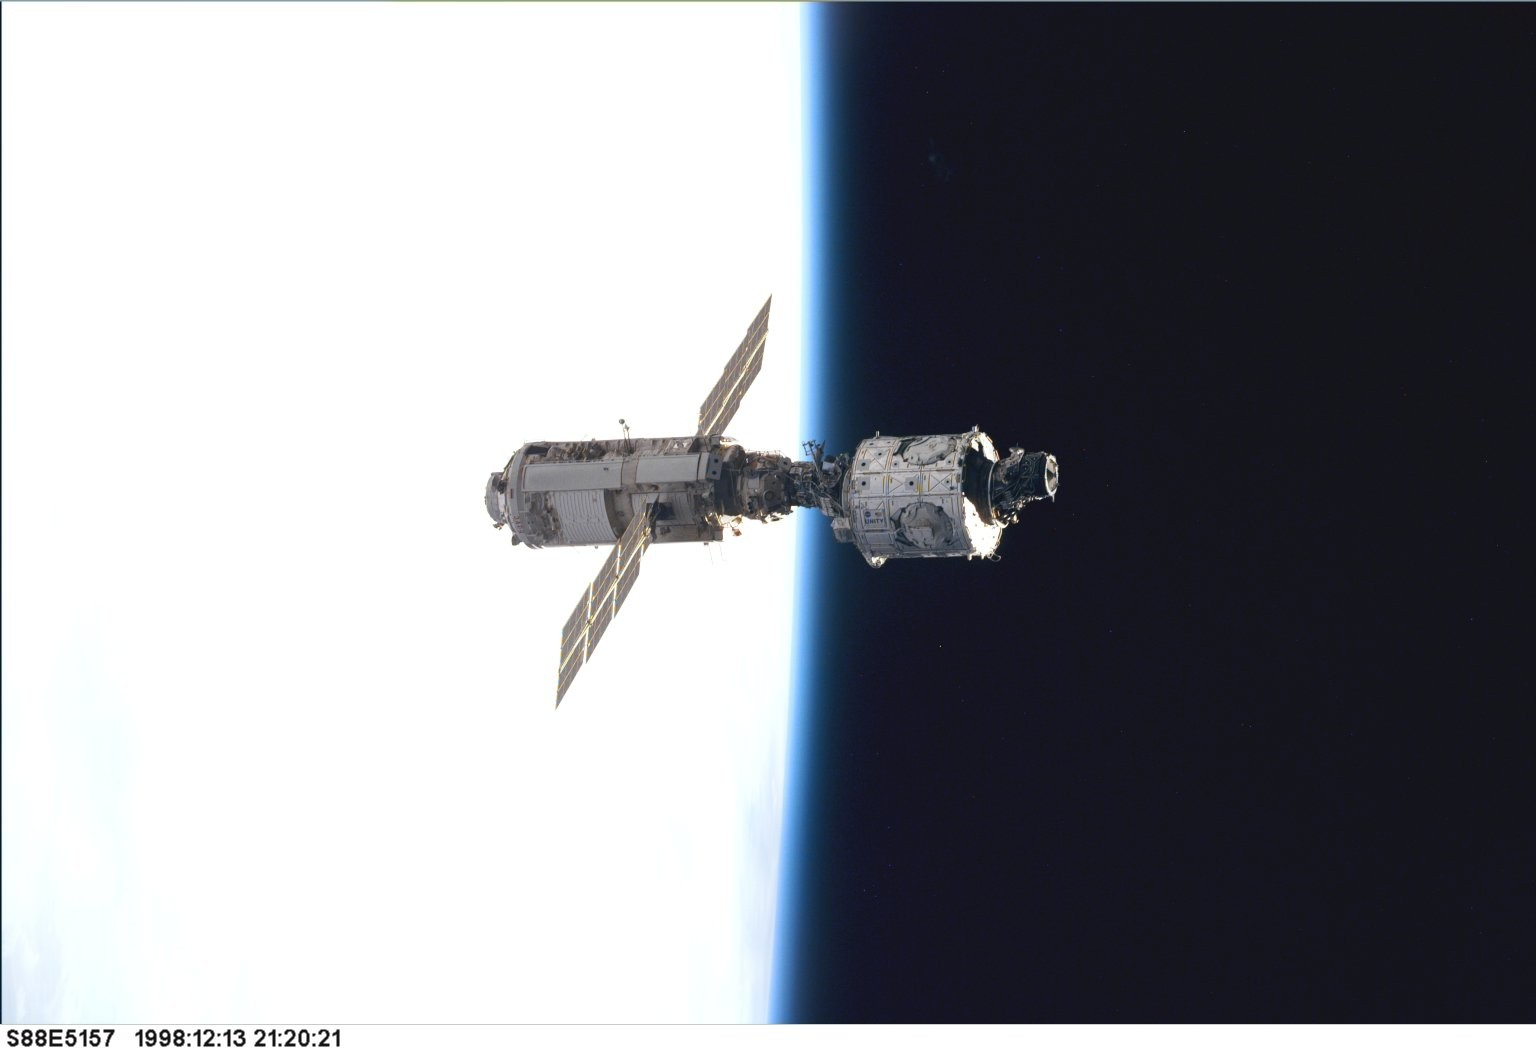 General 1536x1052 space universe space station orbits Orbital Stations NASA technology planet white